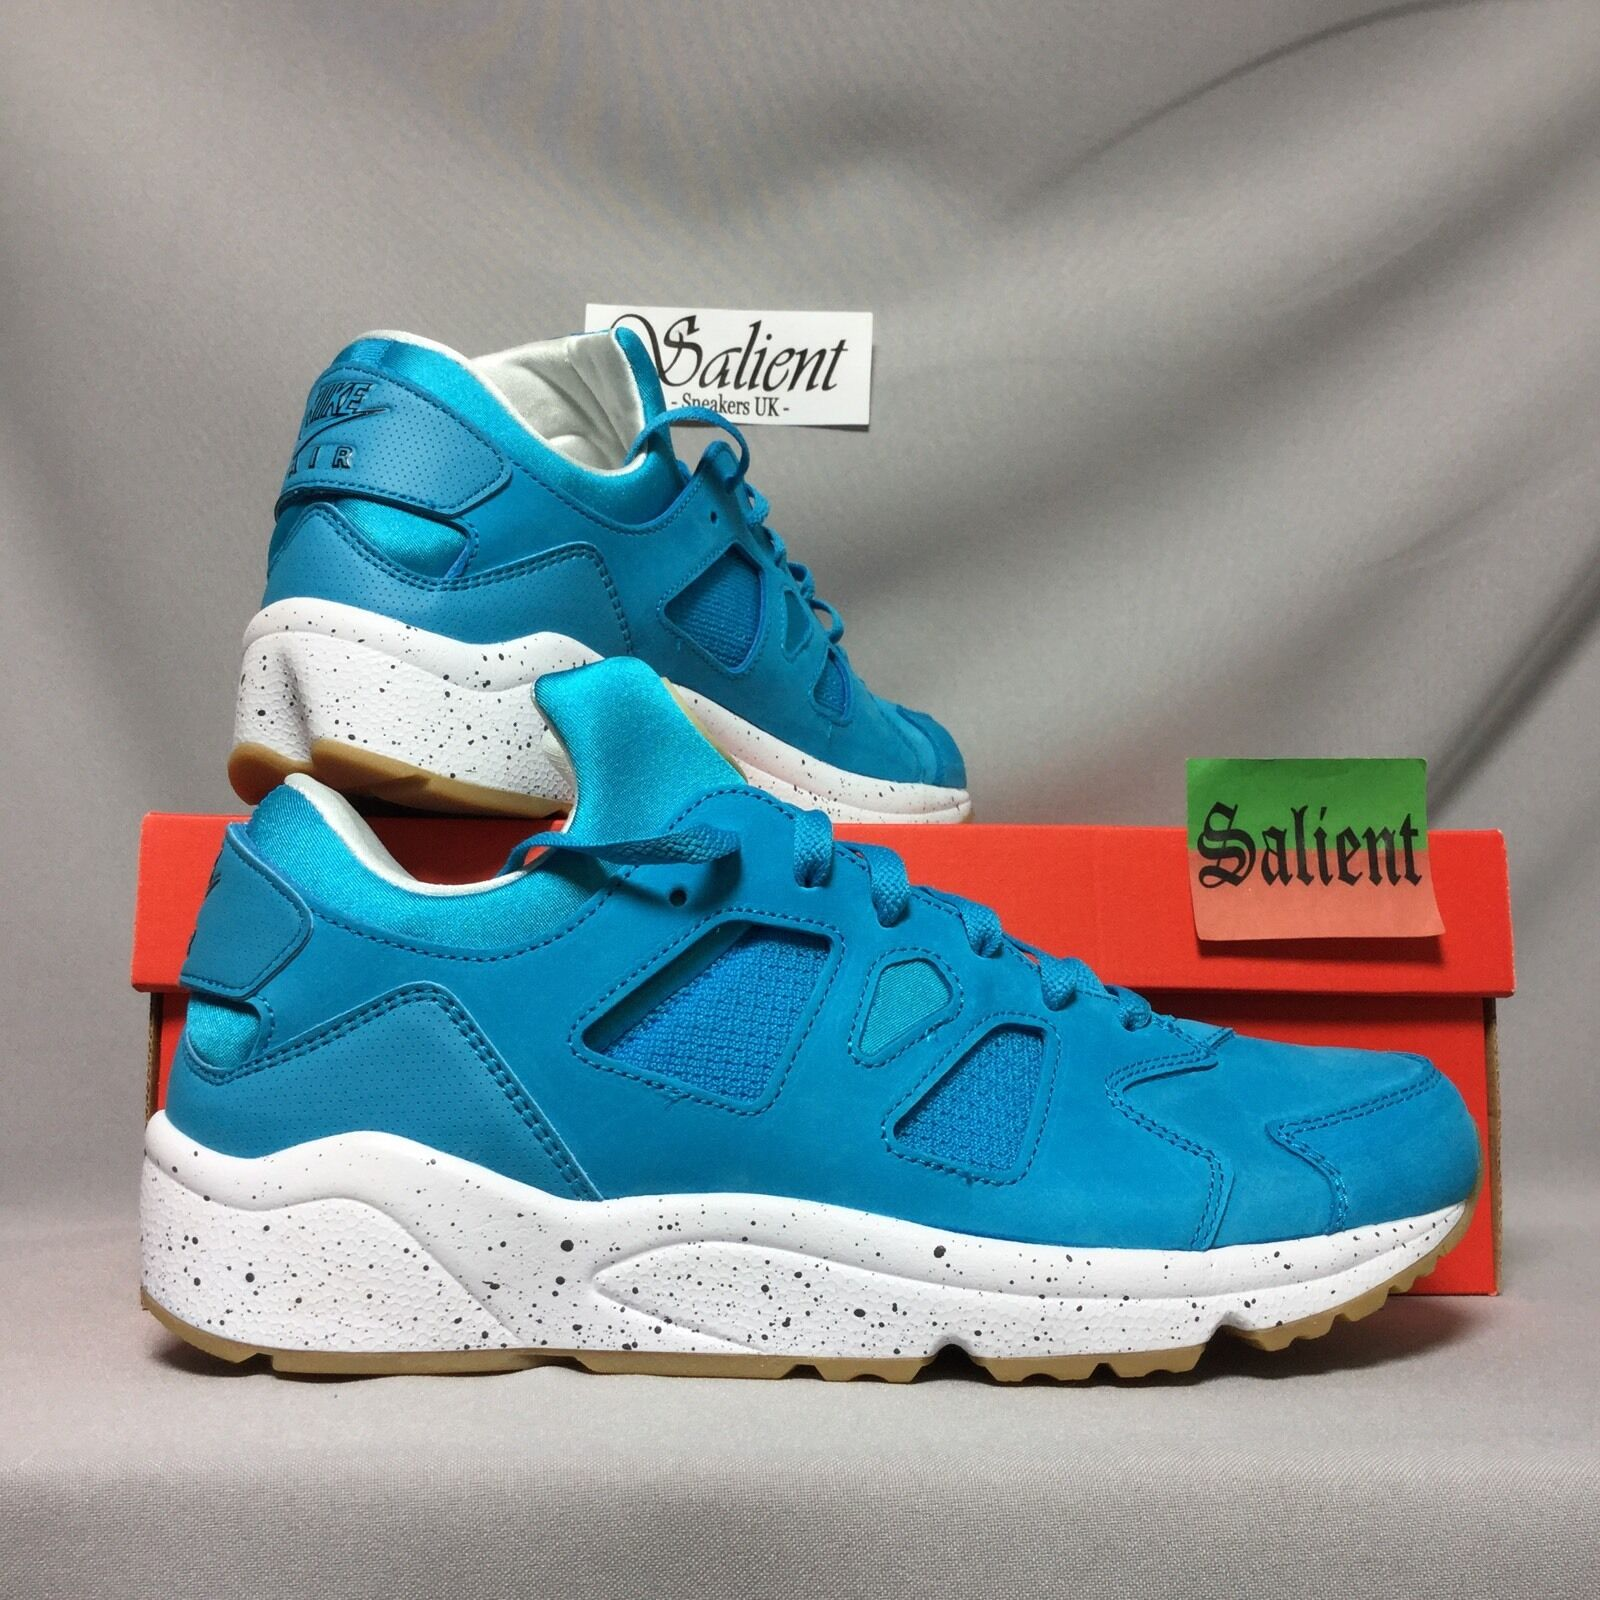 Nike Air Huarache International PRM UK9 structure 818482-400 EUR44 QS US10 structure UK9 light 556d89